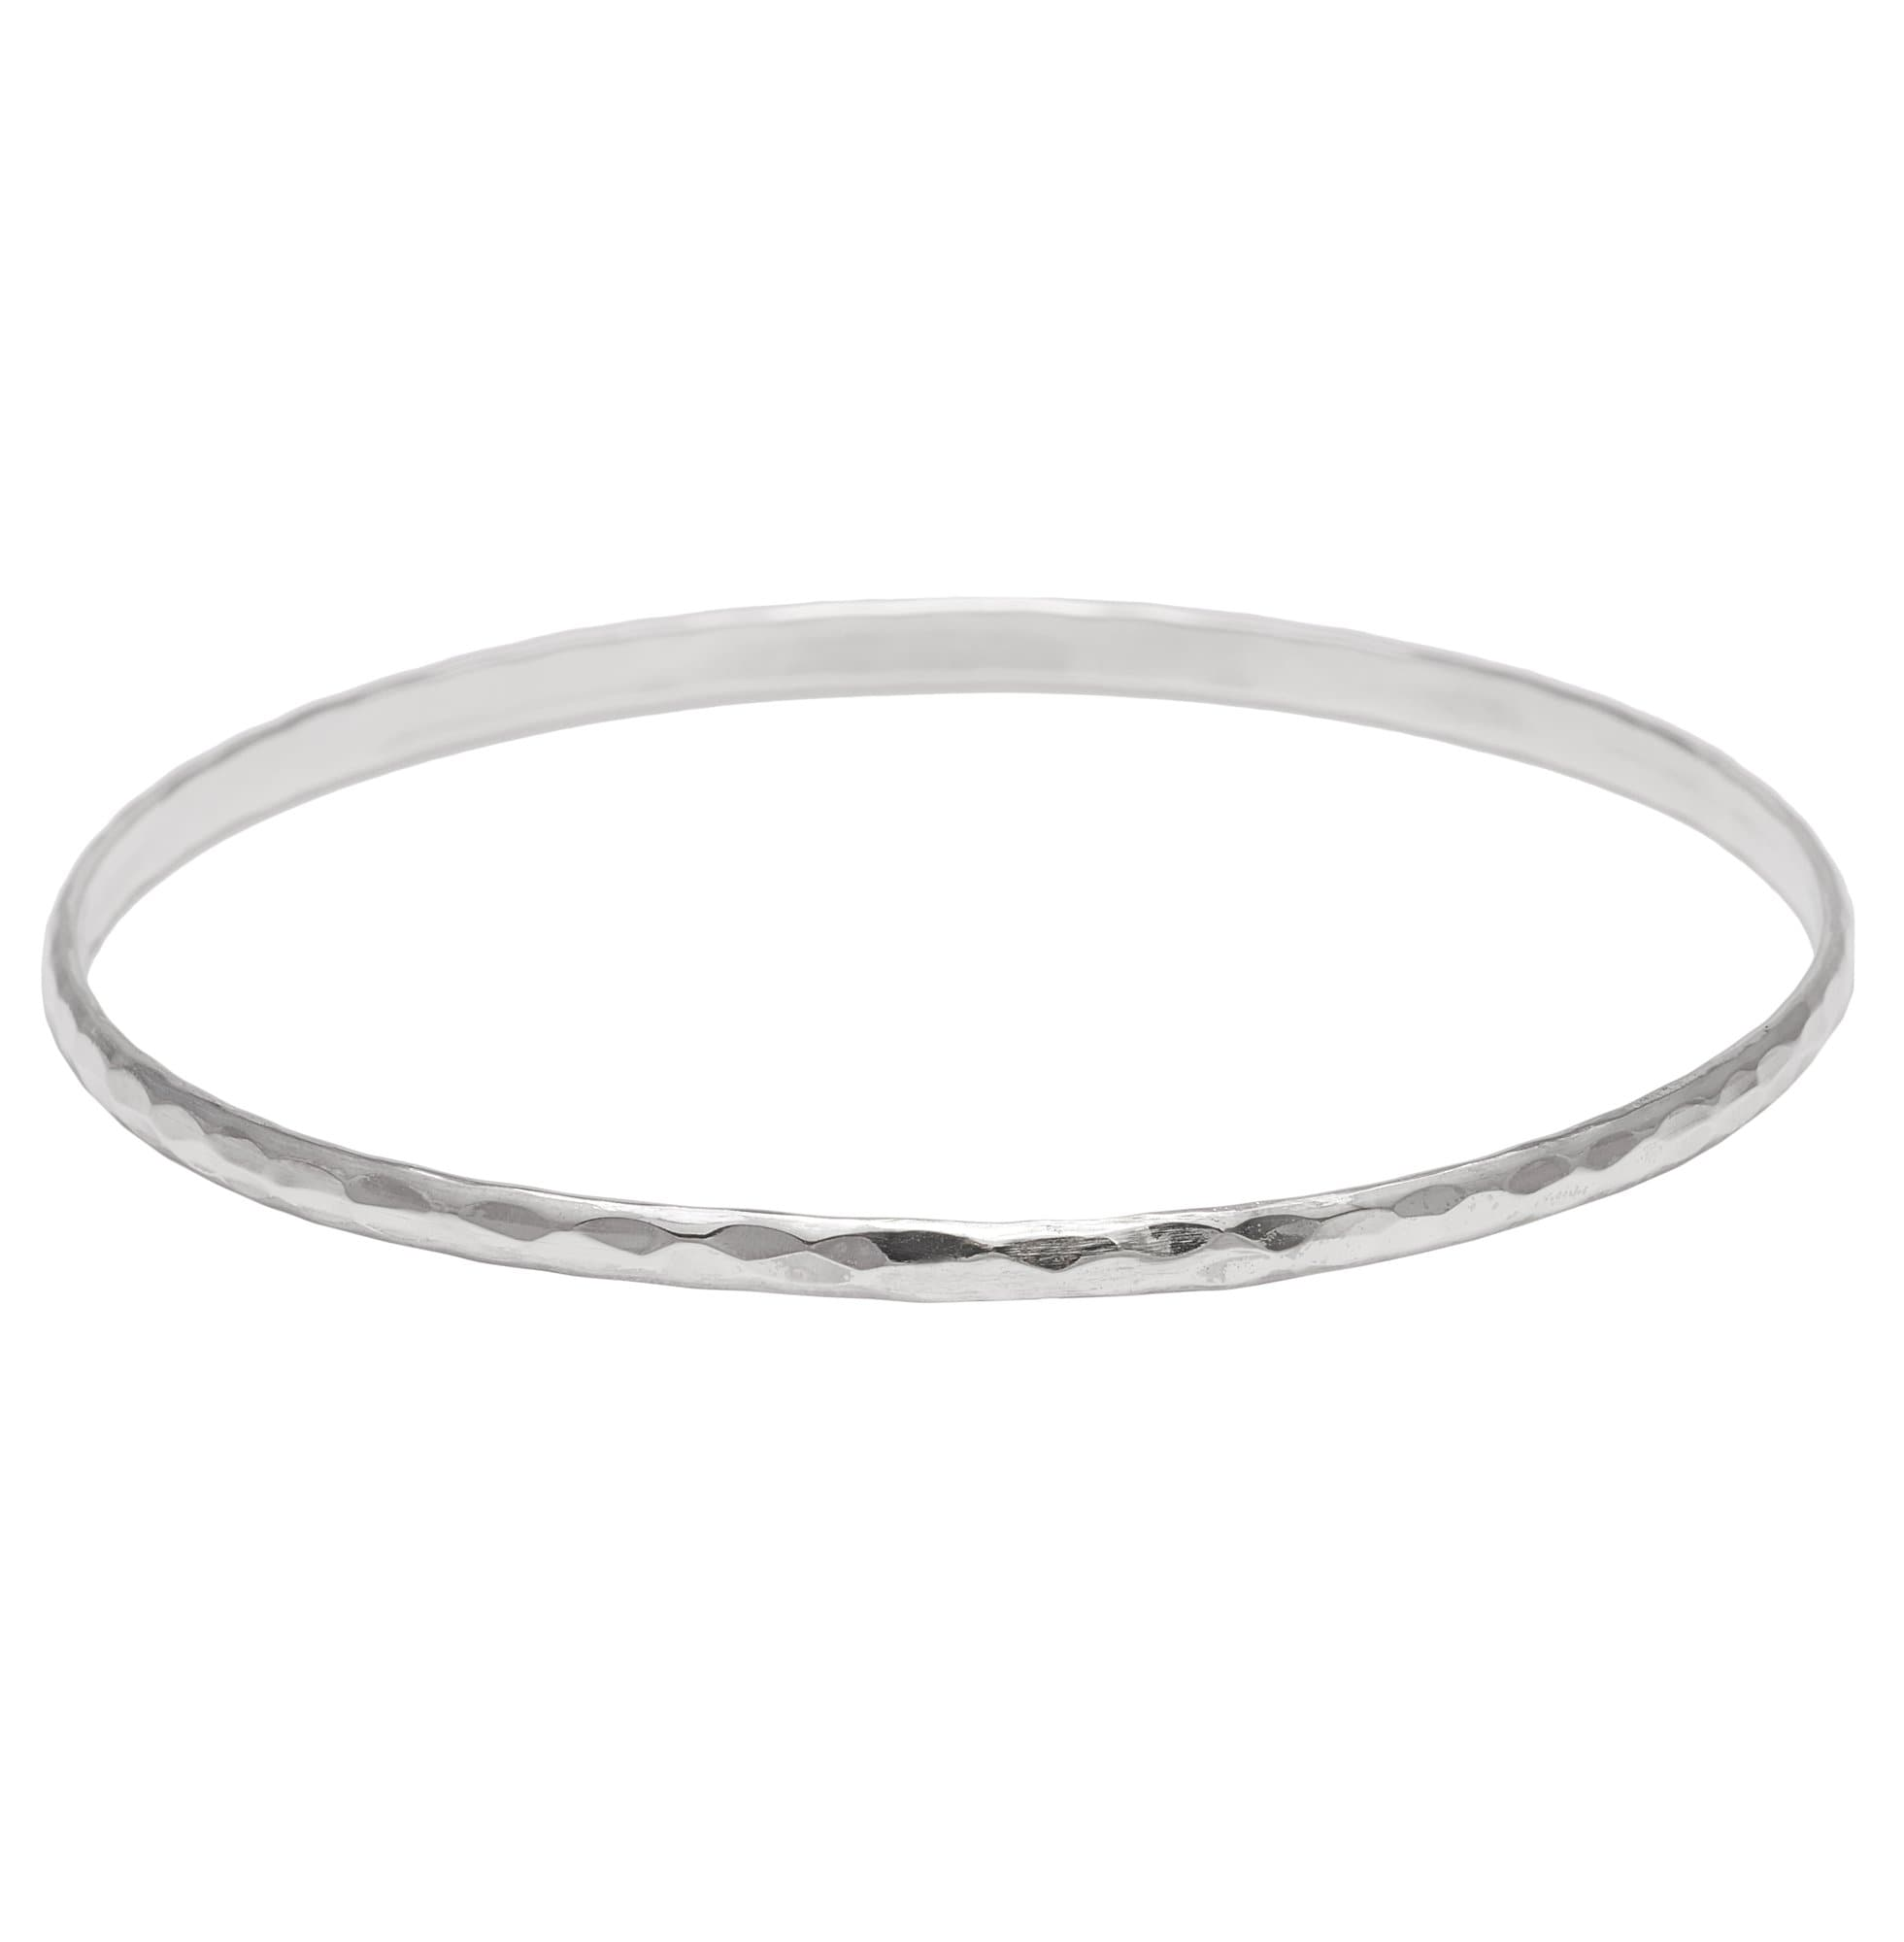 musesilver silver products bracelets plain bracelet jewelers bangles fakier bangle sterling